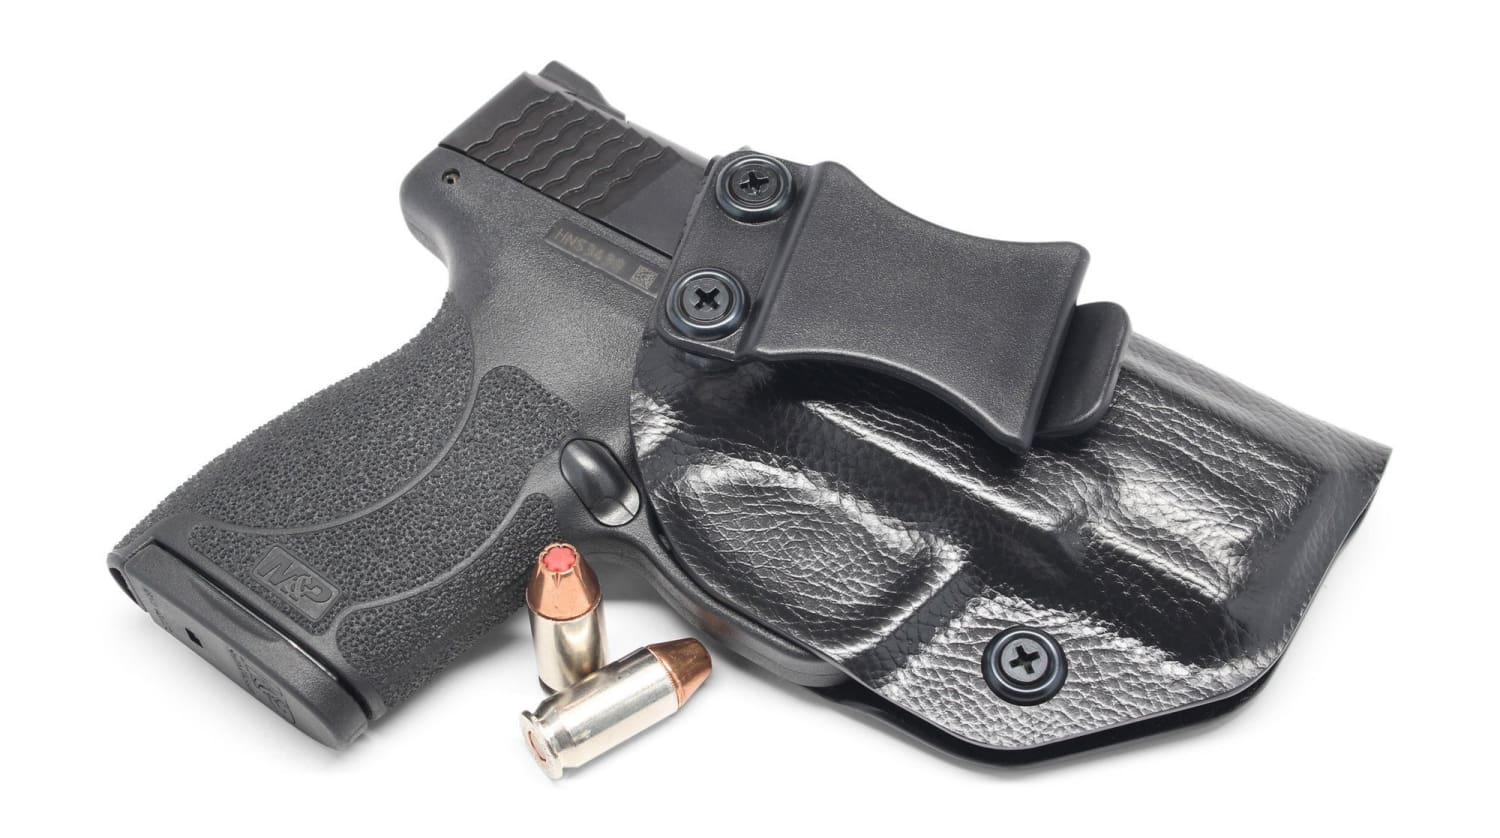 Announcing: M&P SHIELD .45 ACP IWB KYDEX Holster